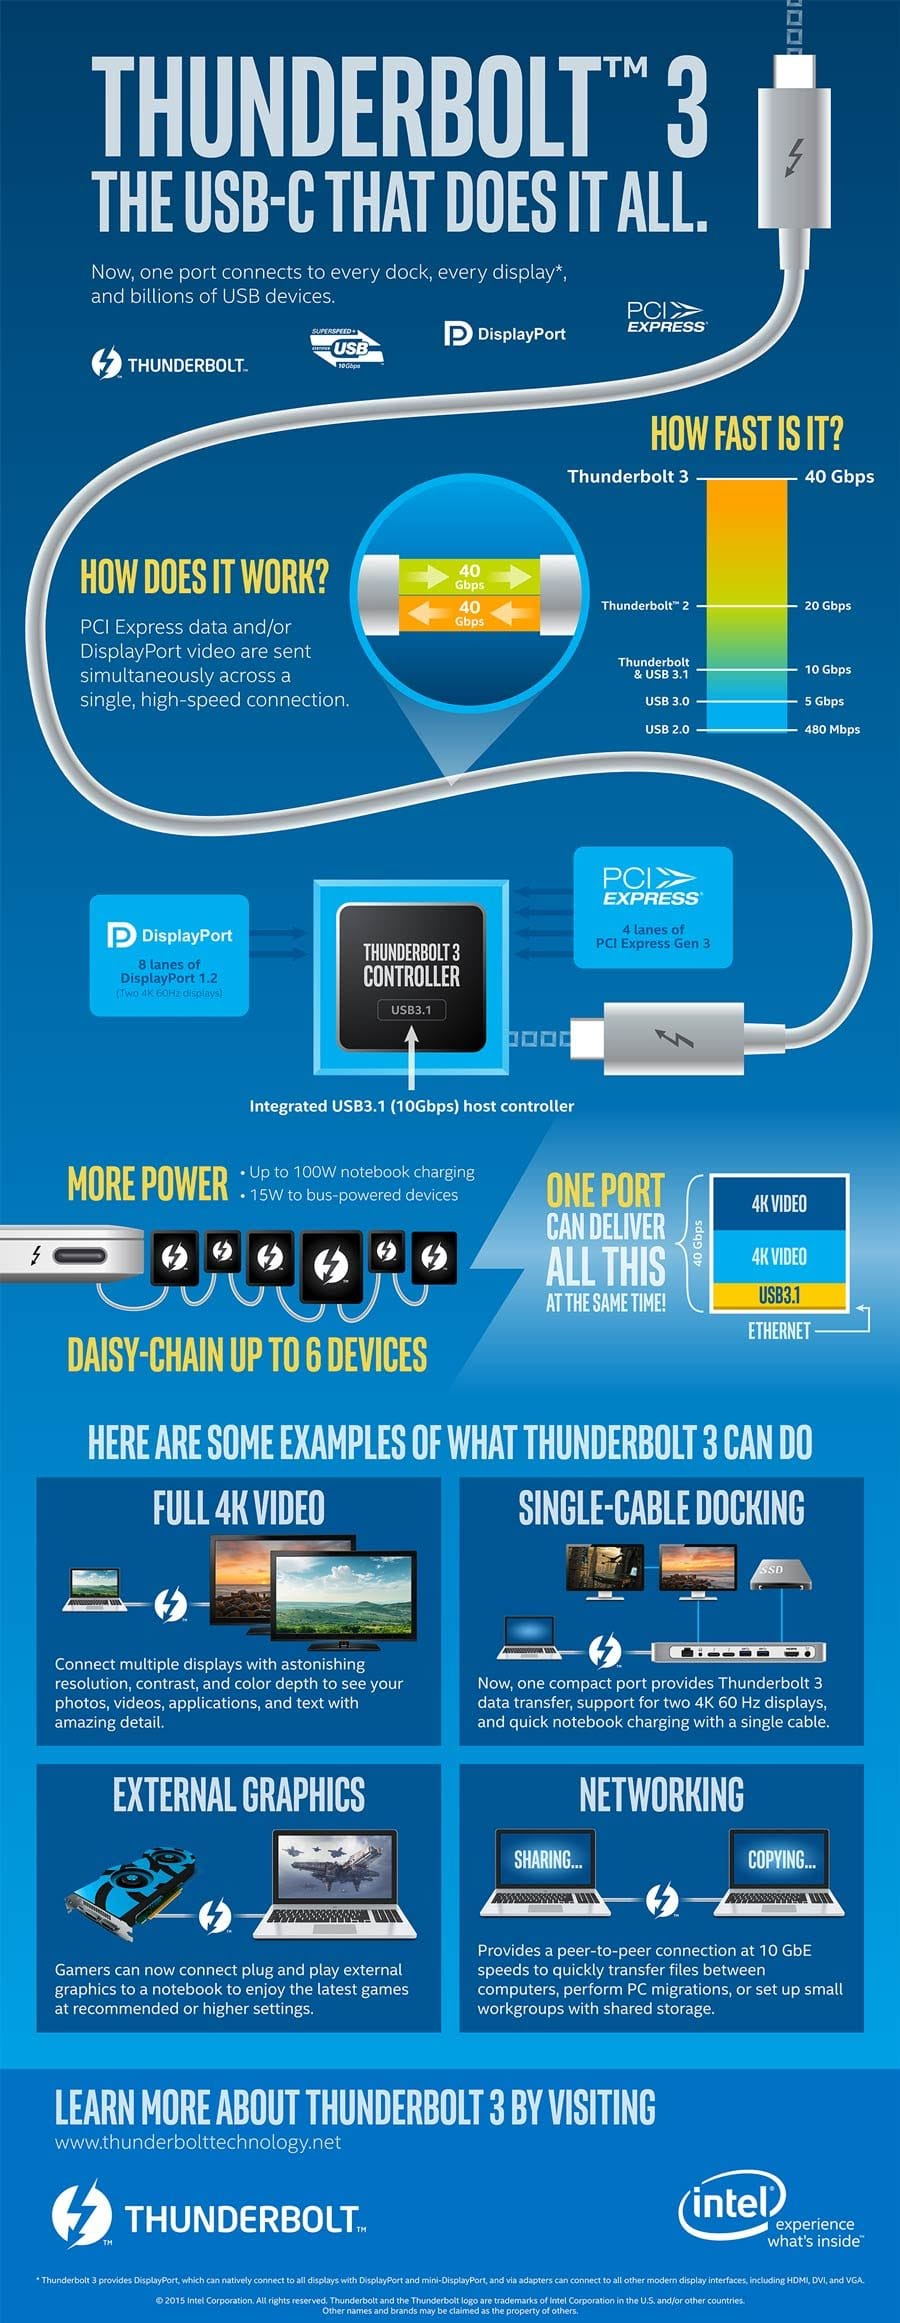 Intel: Thunderbolt 3: The USB-C That Does It All